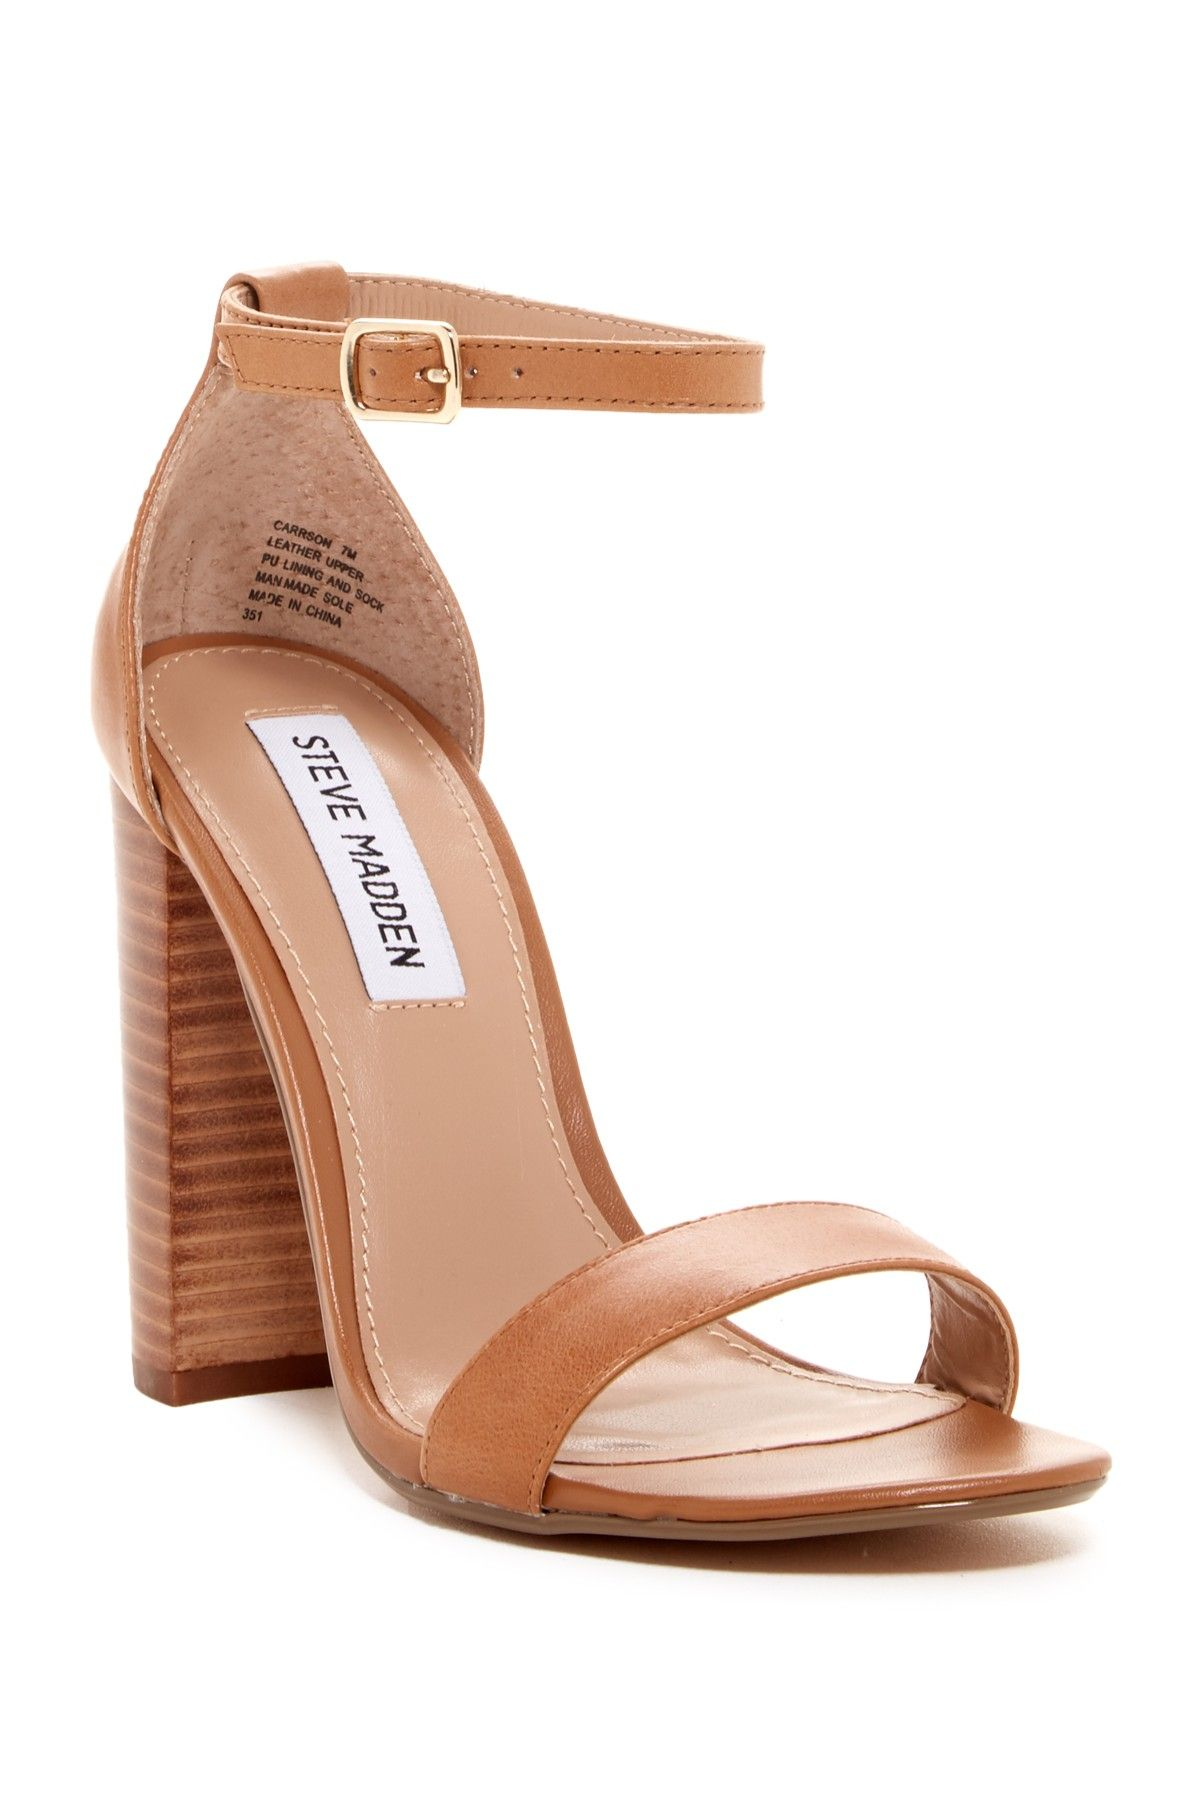 b45ffca8902 An elegant pair of Steve Madden sandals that will go with any work outfit